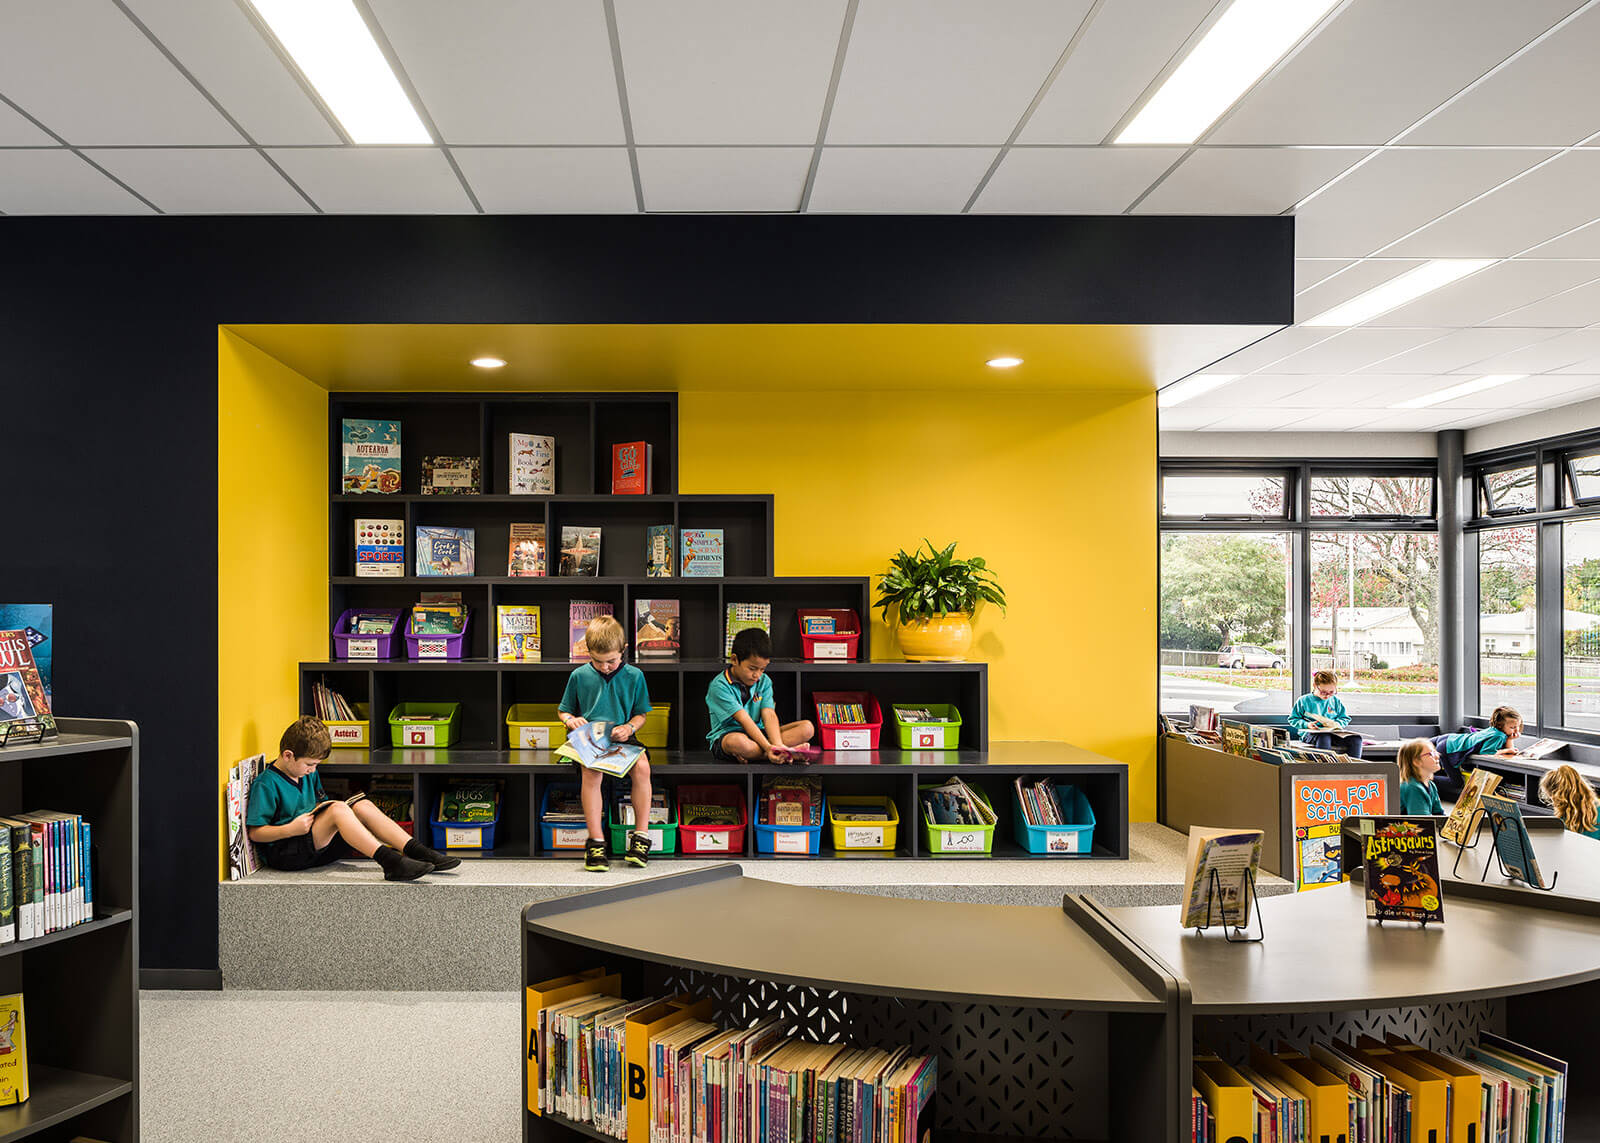 Large open library spaces